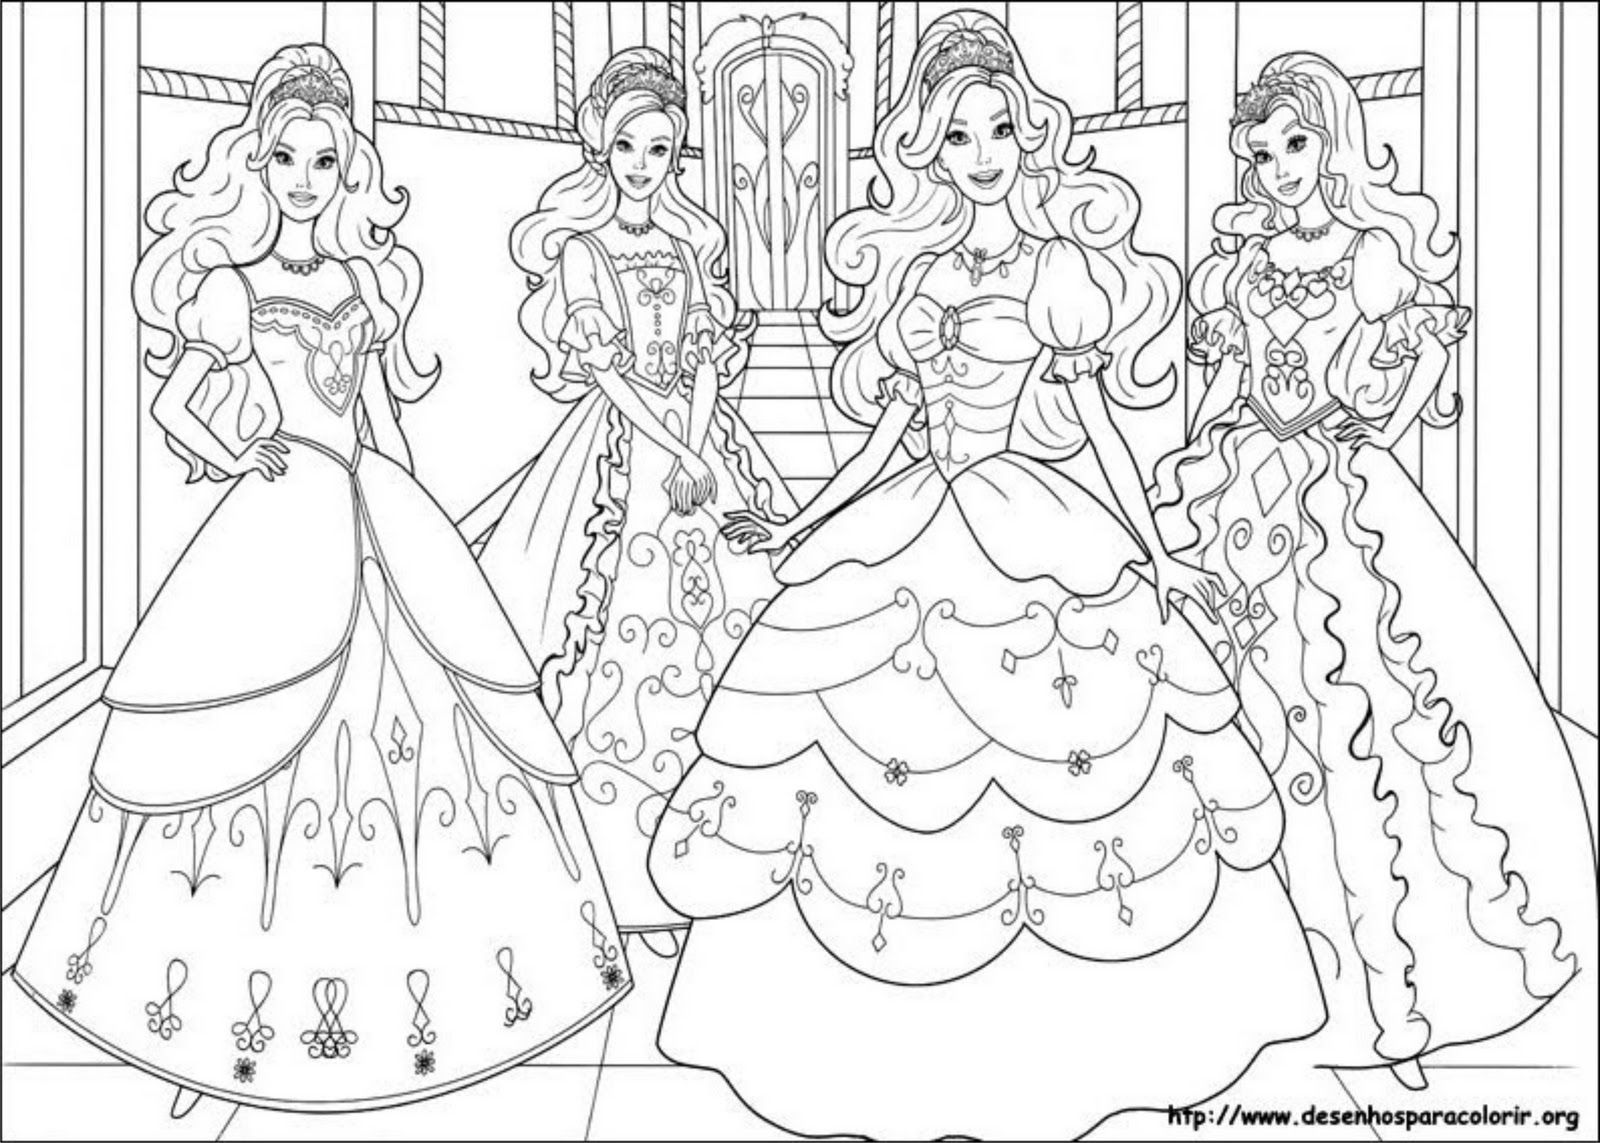 Free printable coloring pages barbie princess - Princess Barbie Printables Coloring Pages High Quality Coloring